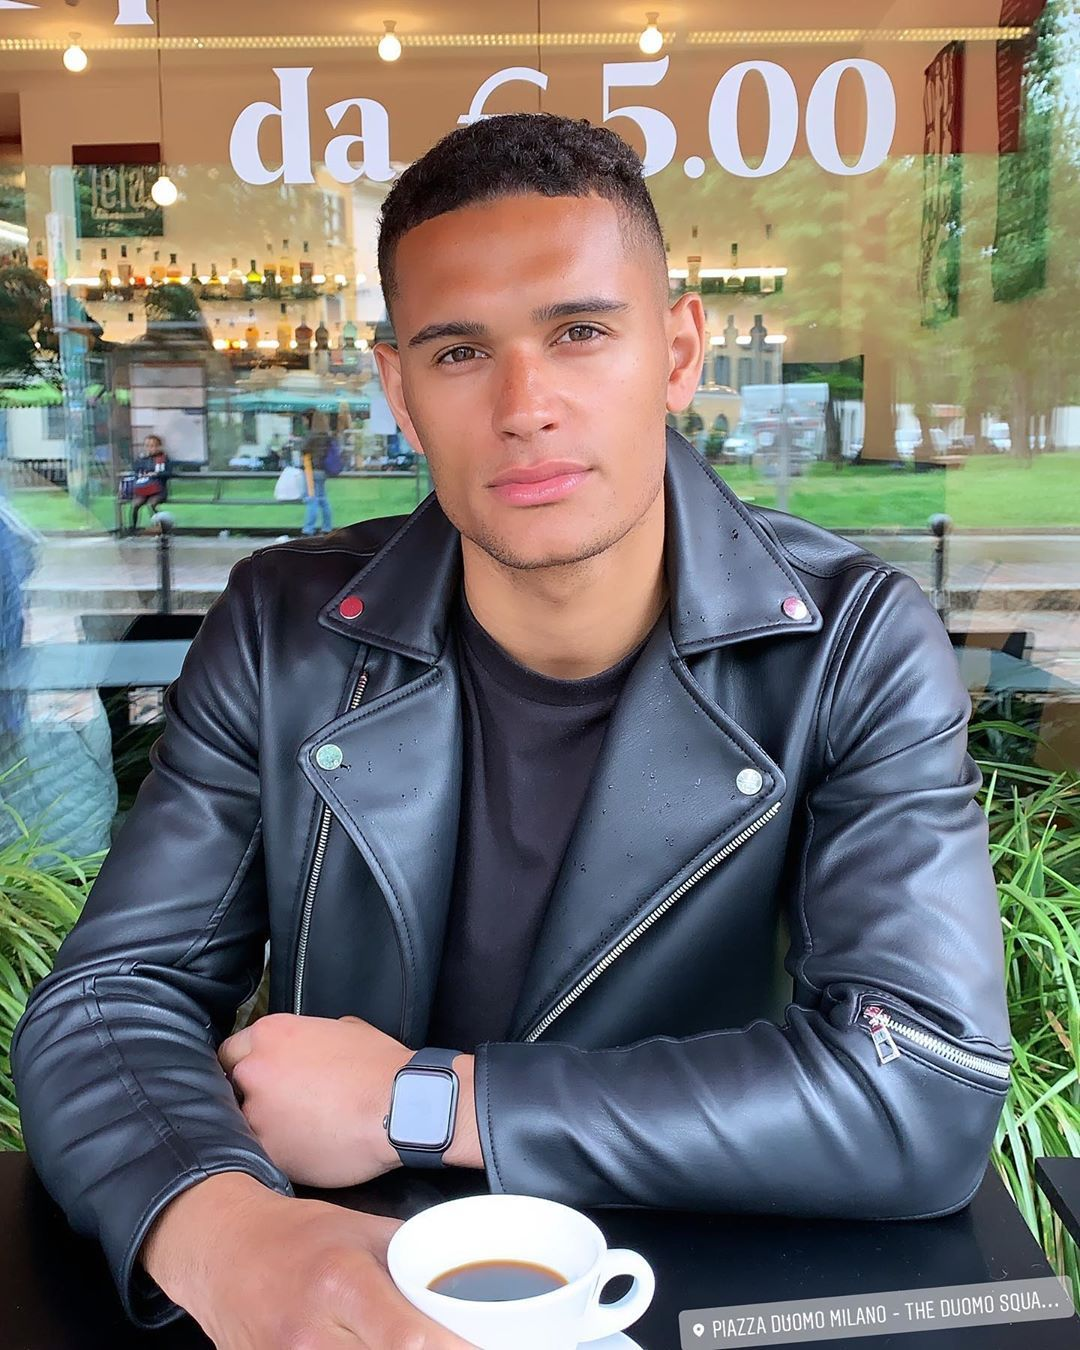 Image may contain: Danny Love Island, Danny Williams, Love Island, 2019, new, cast, Islander, contestant, boy, villa, model, Hull, Instagram, age,  Leather Jacket, Person, Human, Jacket, Coat, Apparel, Clothing